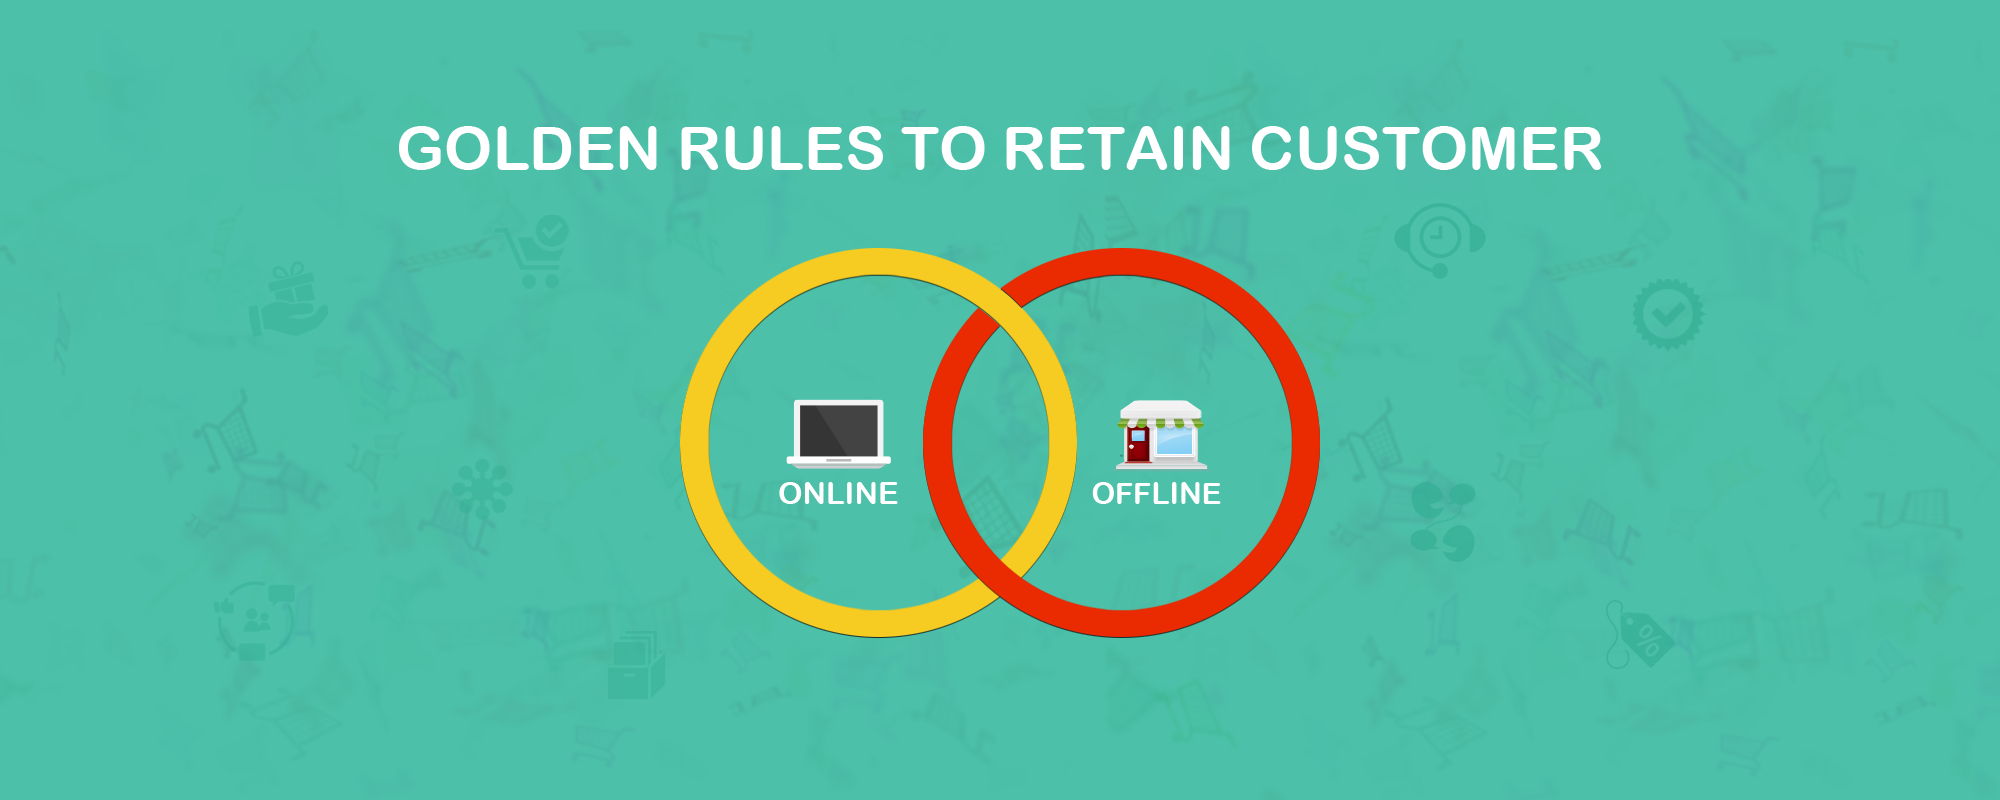 Product Selling & Customer Experience Rules are Similar Online and Offline